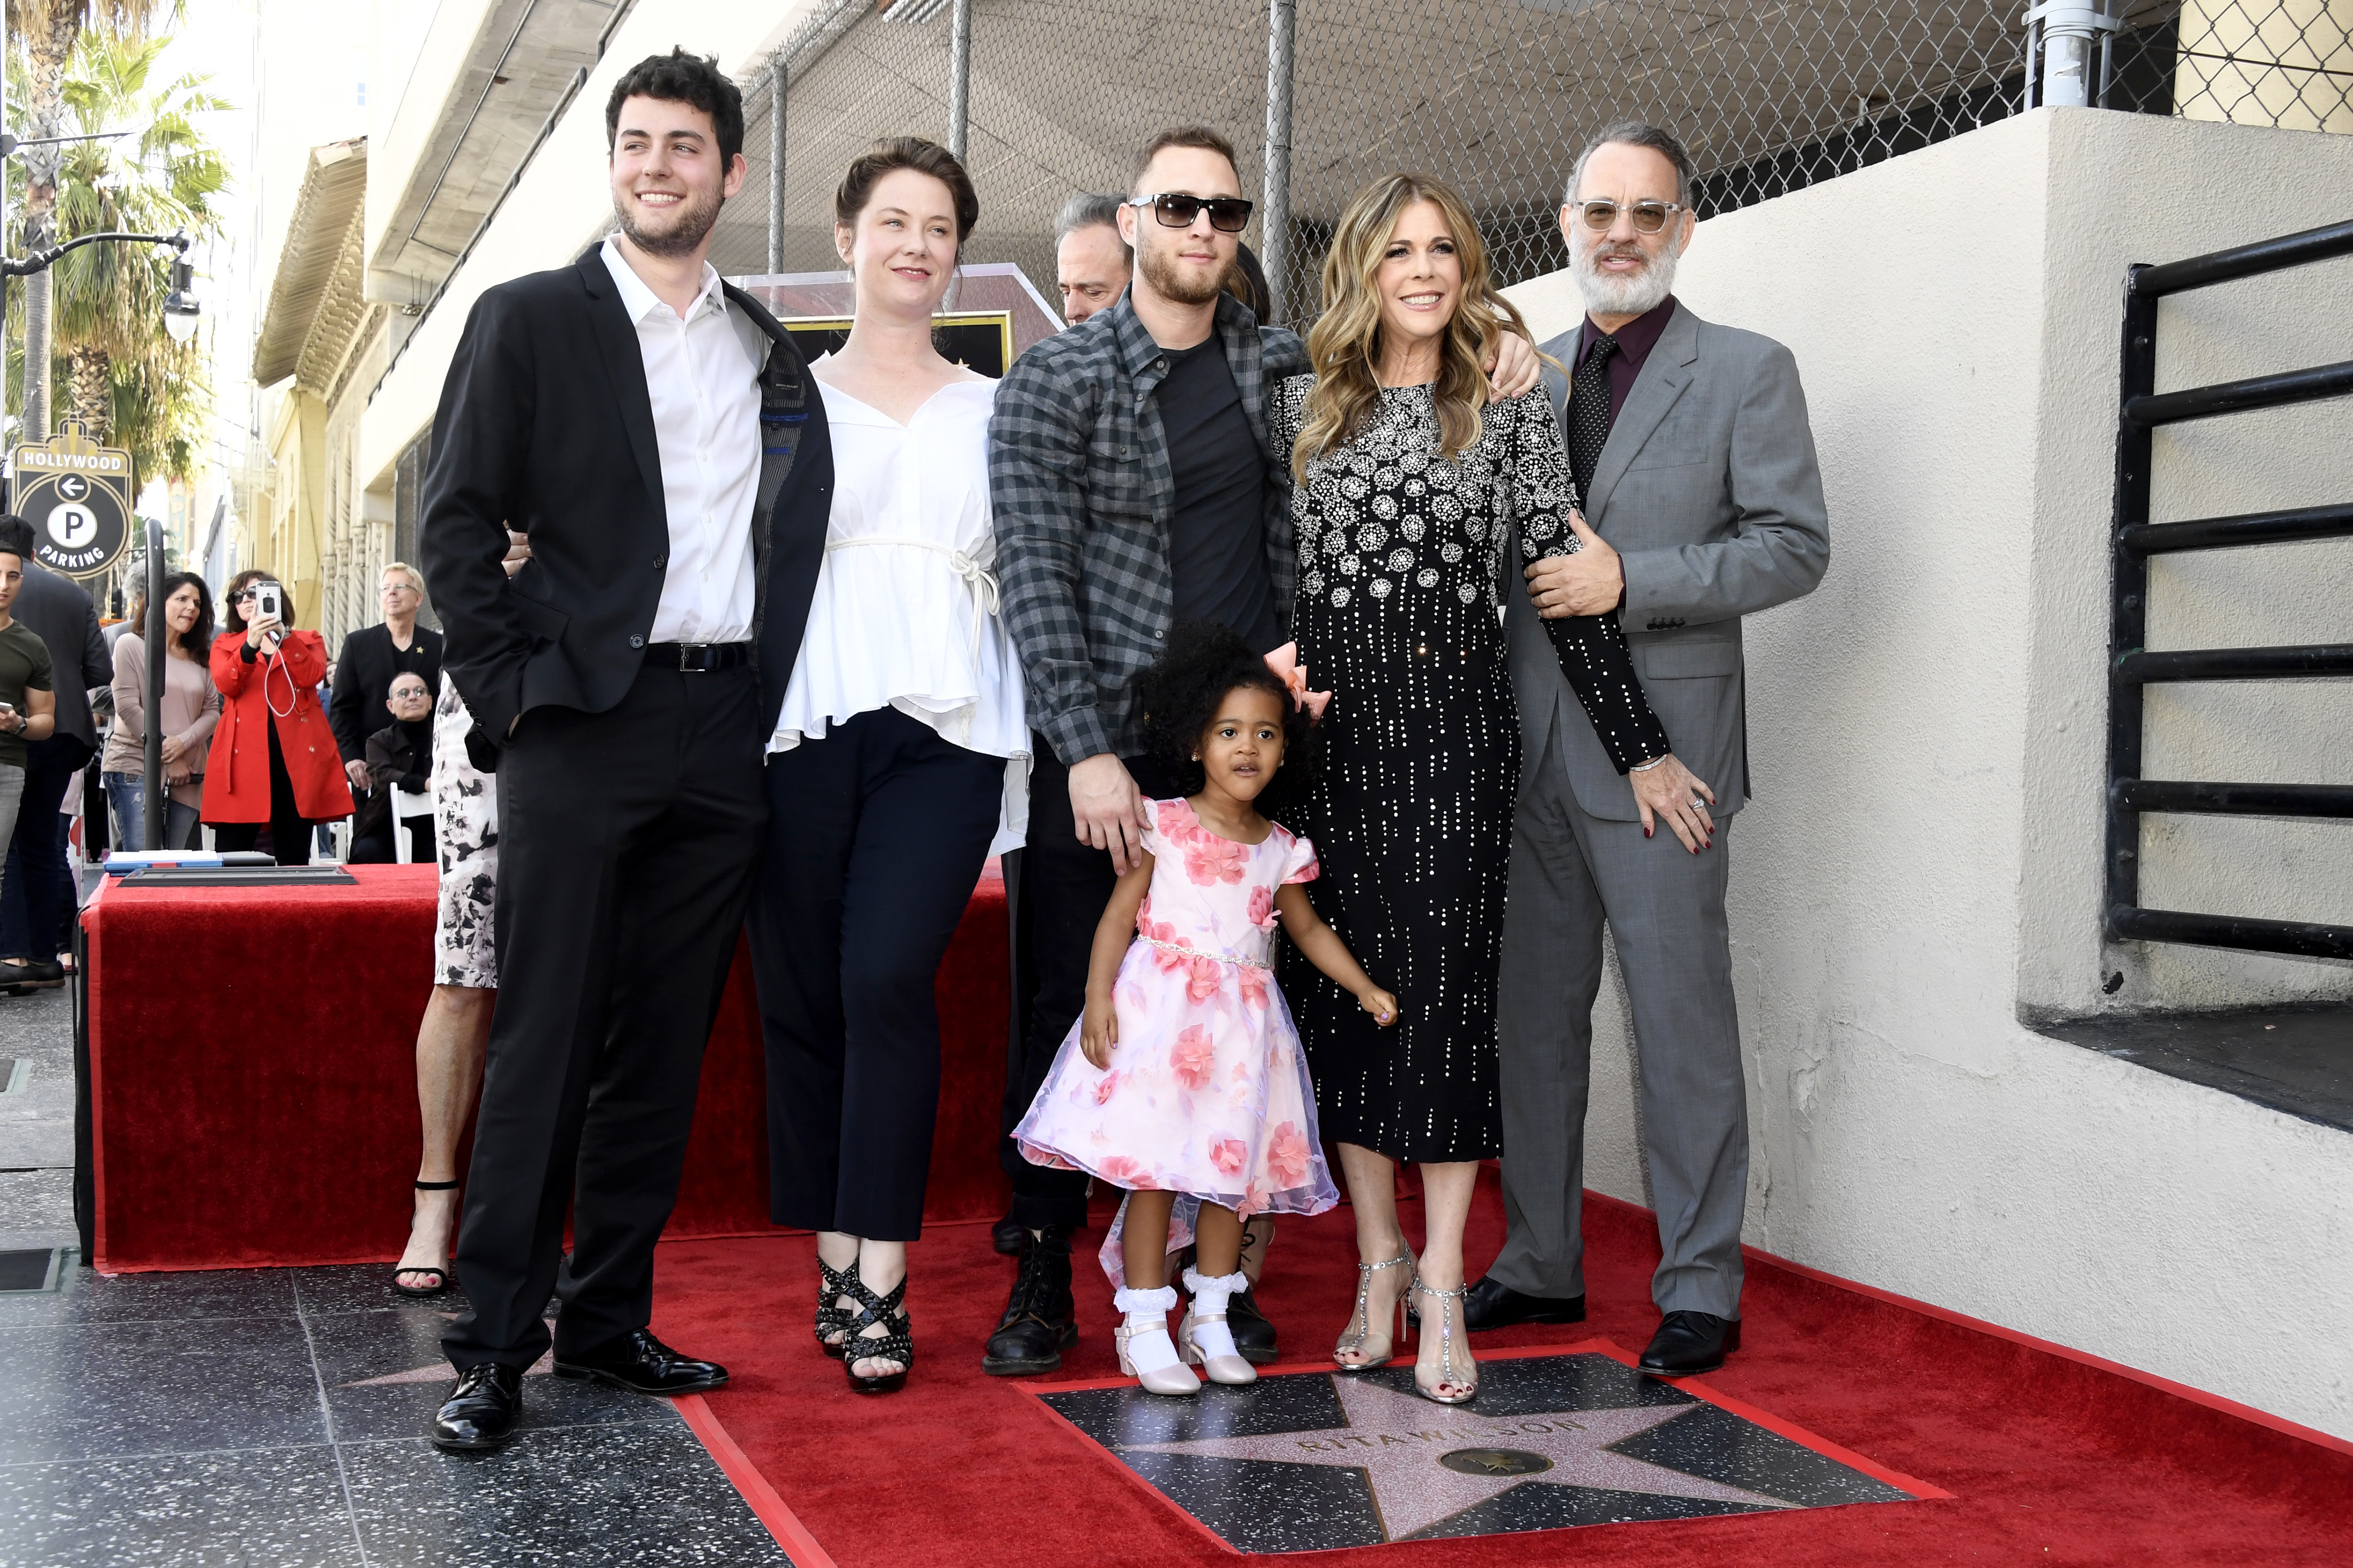 Truman Hanks, Elizabeth Hanks, Chet Hanks, Tom Hank and Michaiah Hanks support Rita Wilson as she receives a star on the Hollywood Walk of Fame on March 29, 2019.